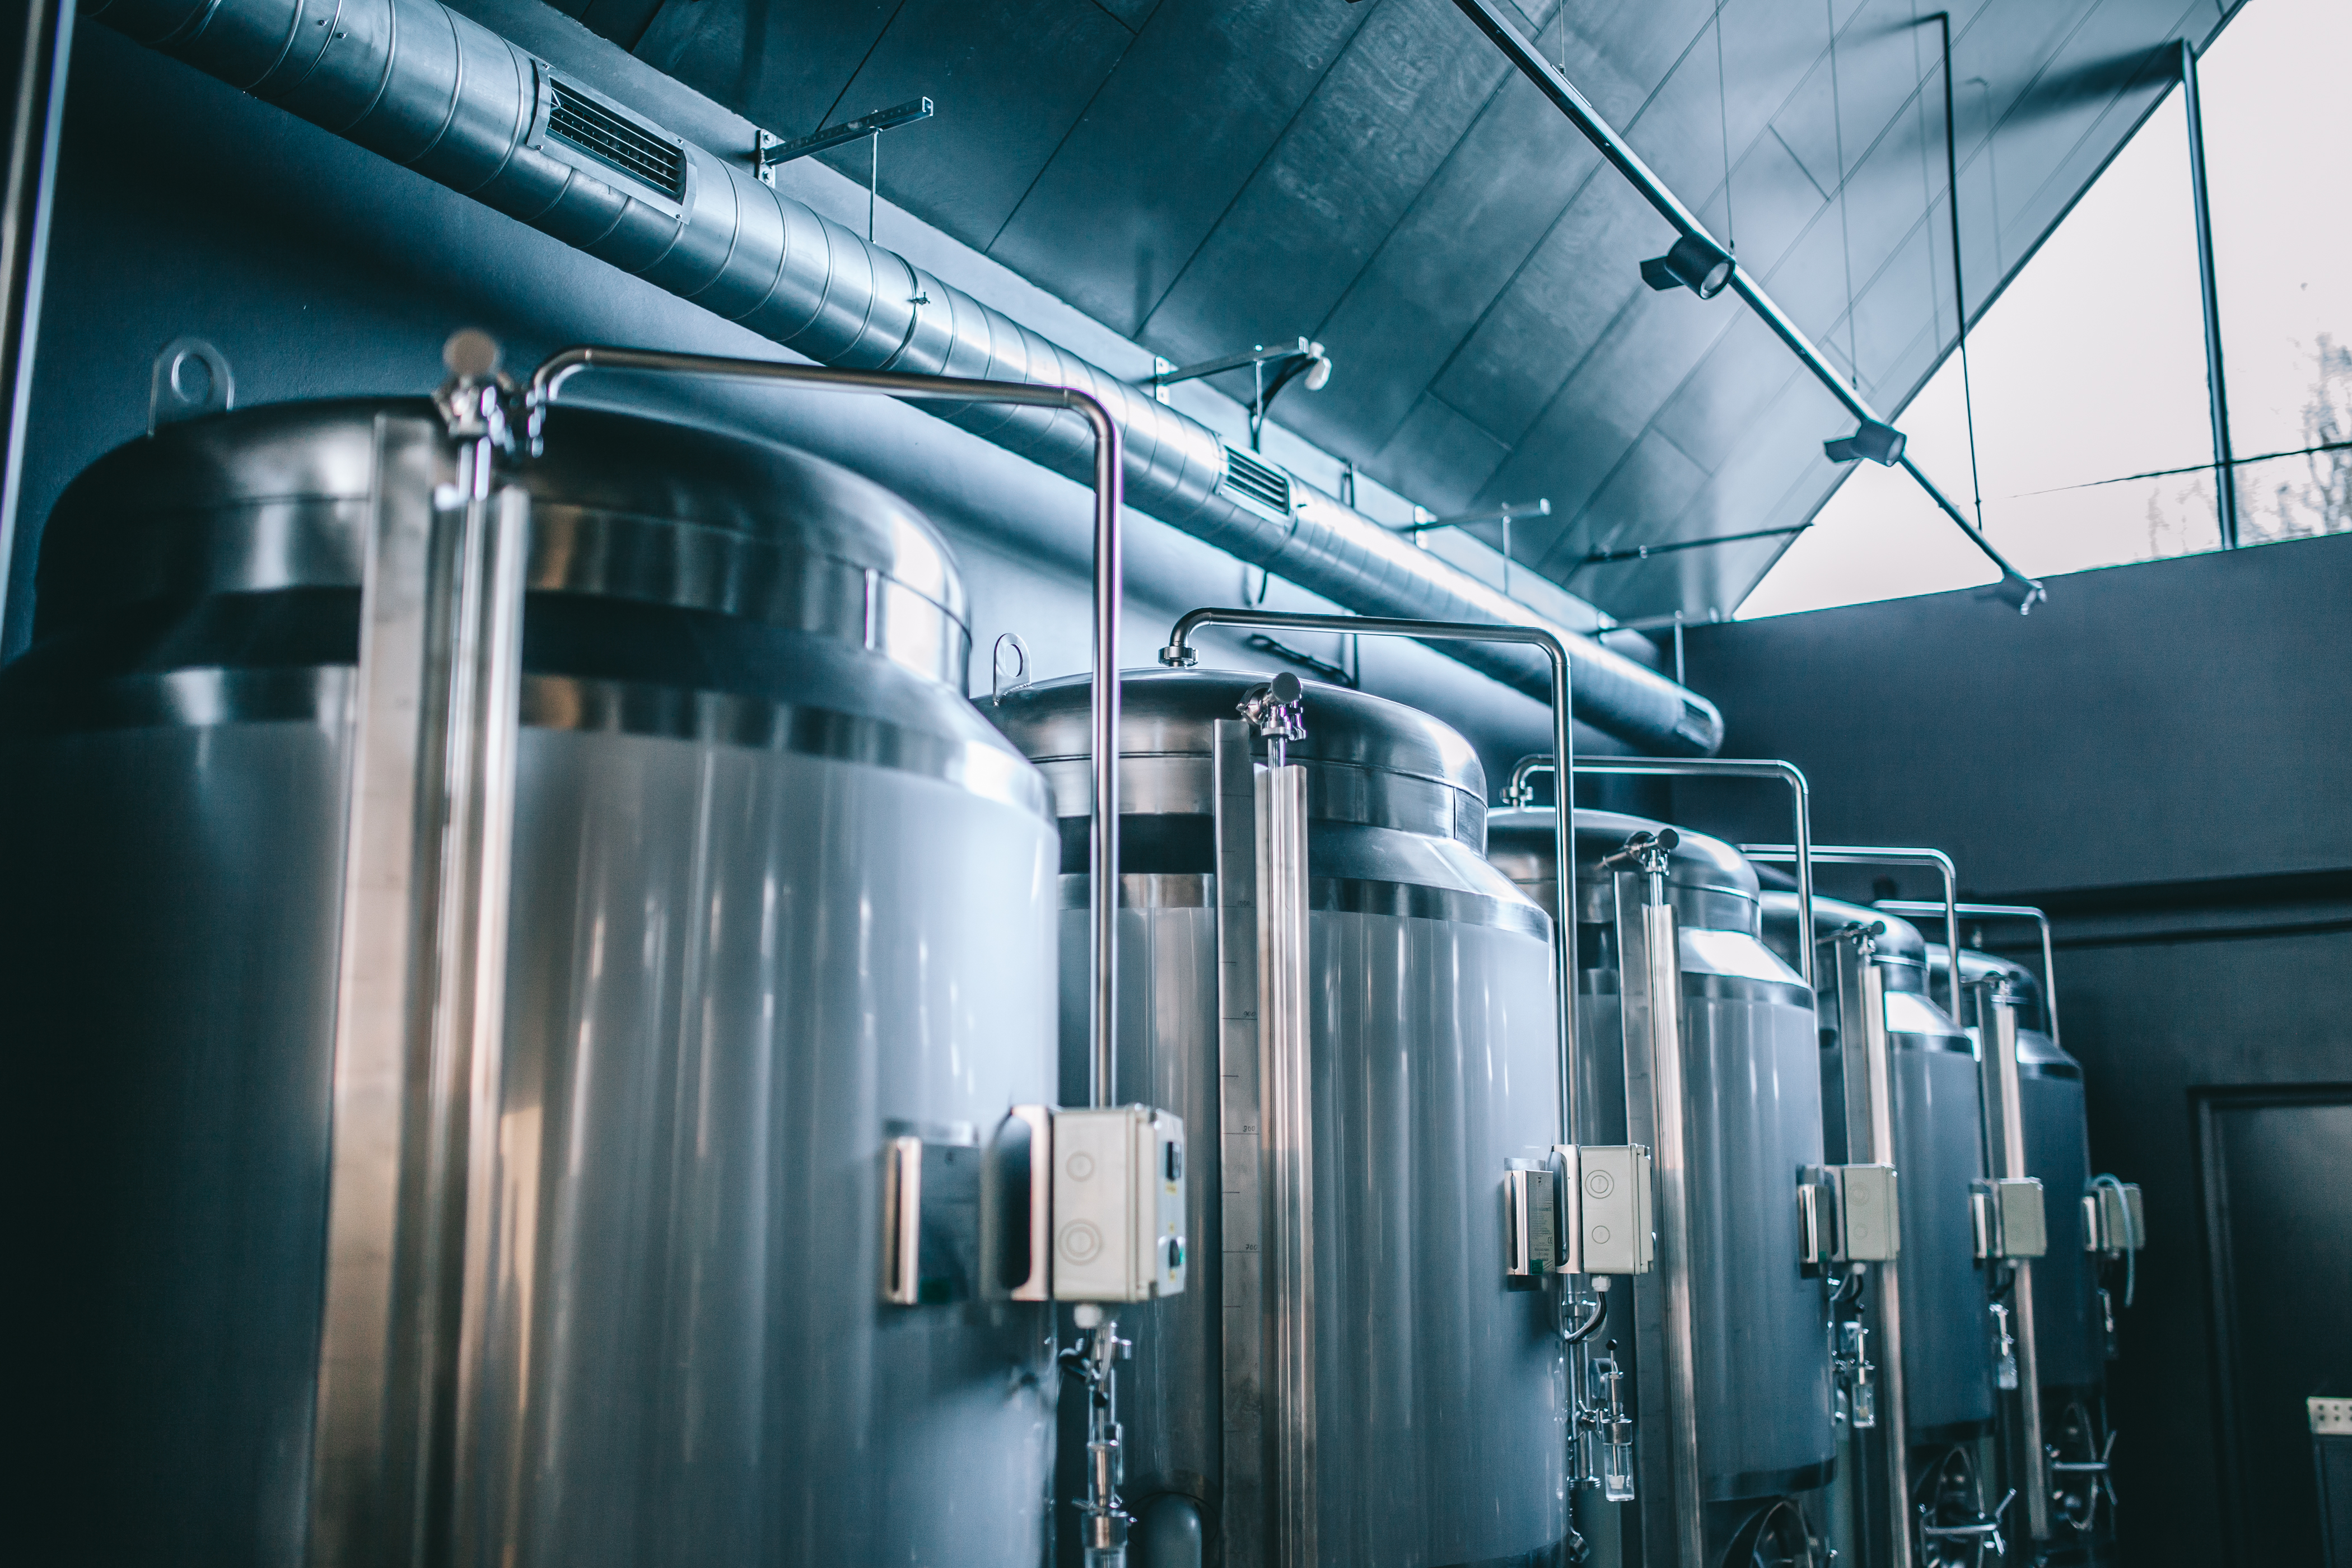 Craft,Beer,Brewing,Equipment,In,Brewery!,Metal,Tanks,,Alcoholic,Drink